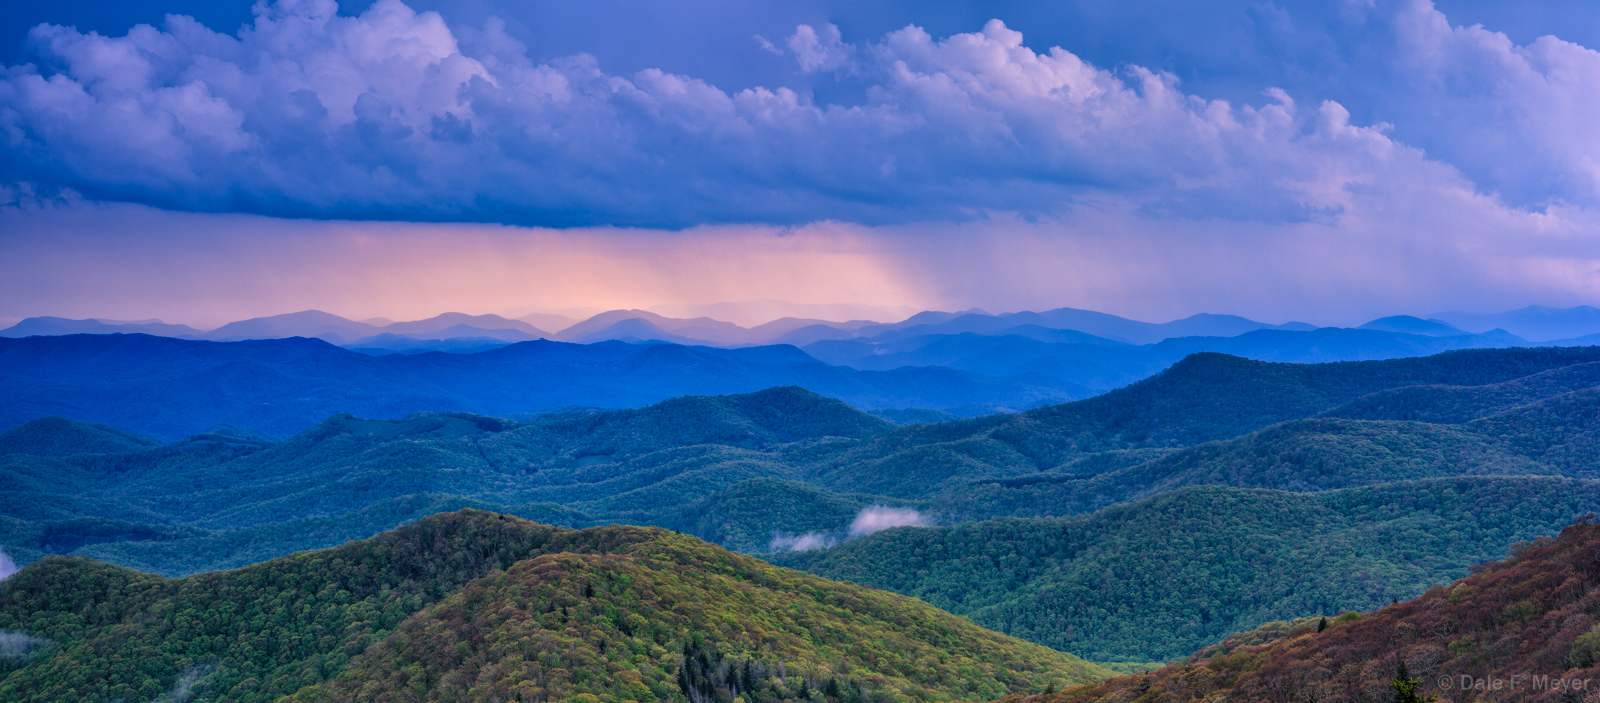 Blue Ridge Parkway, Mountains,Rain Storm, Spring 2013, North Carolina, Thunder, photo